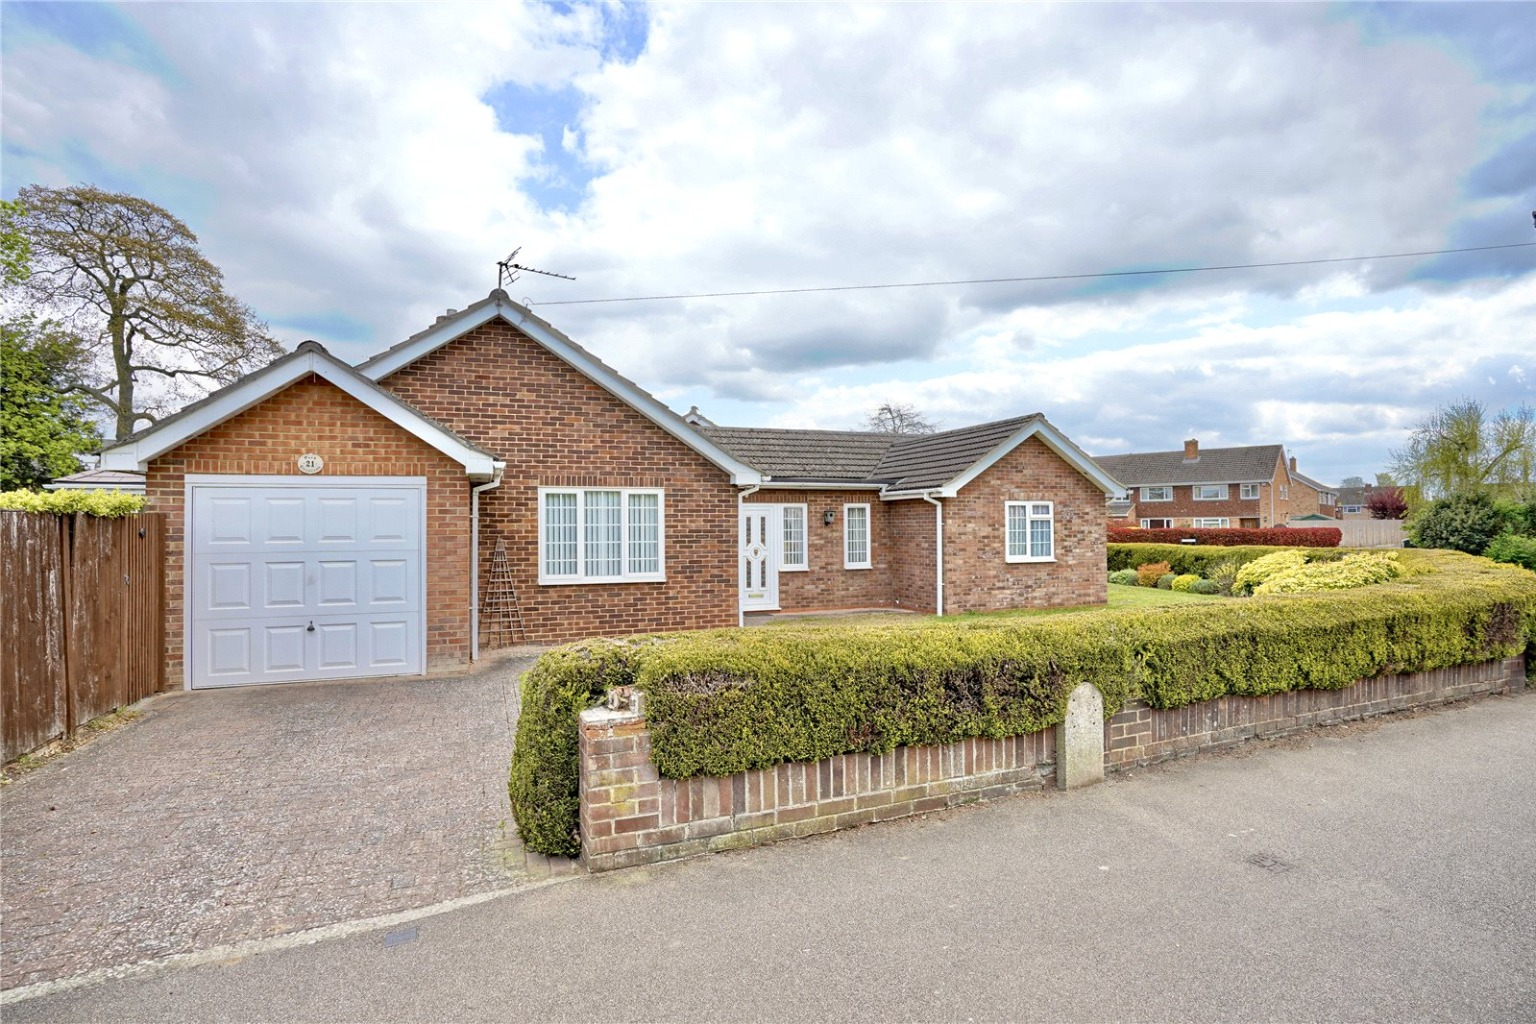 2 bed detached bungalow for sale in Park Crescent, St. Neots  - Property Image 1